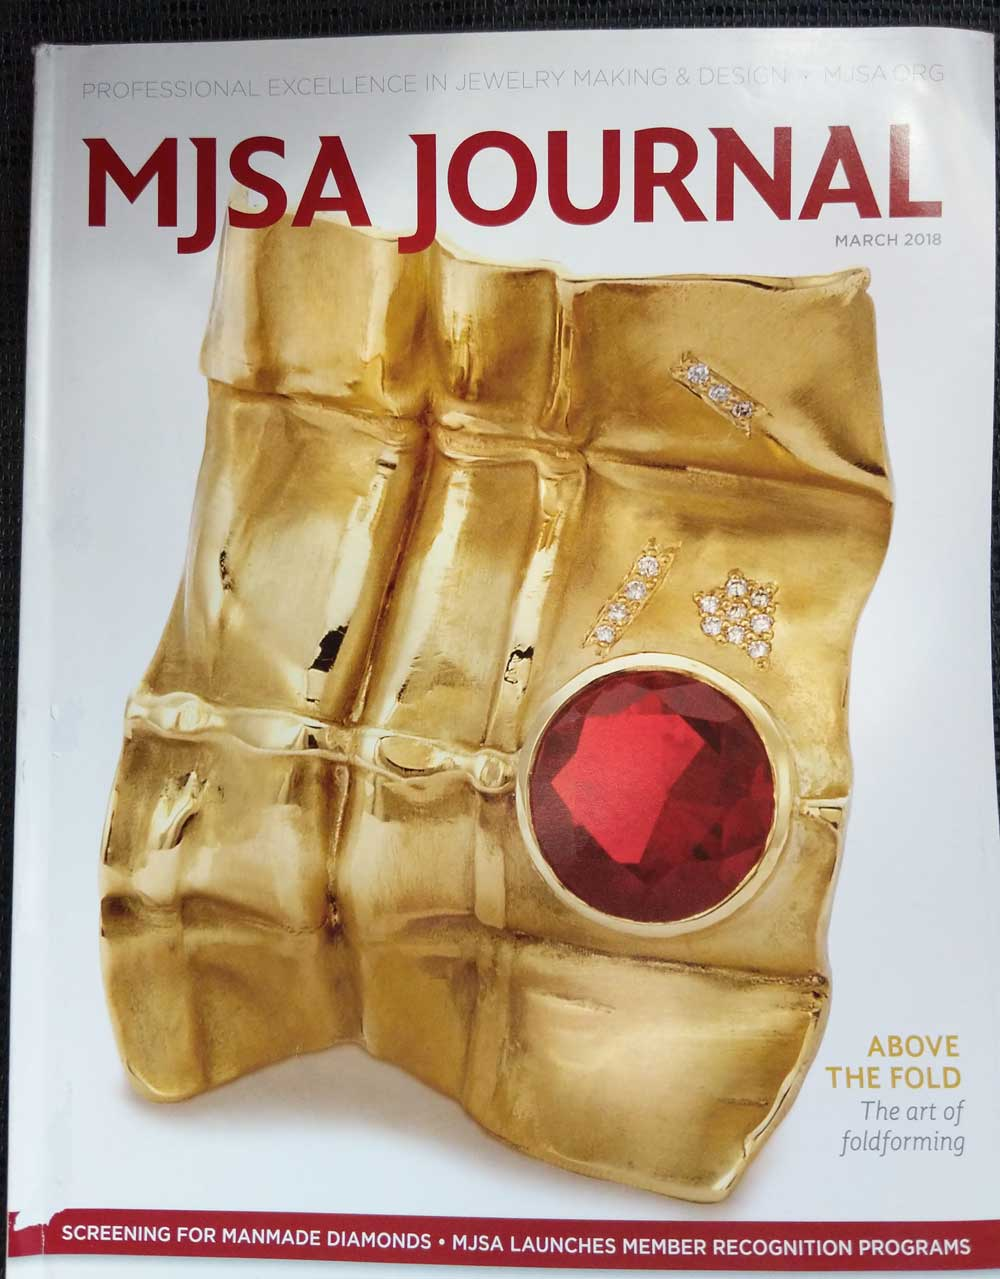 Cover of MJSA Journal, March 2018